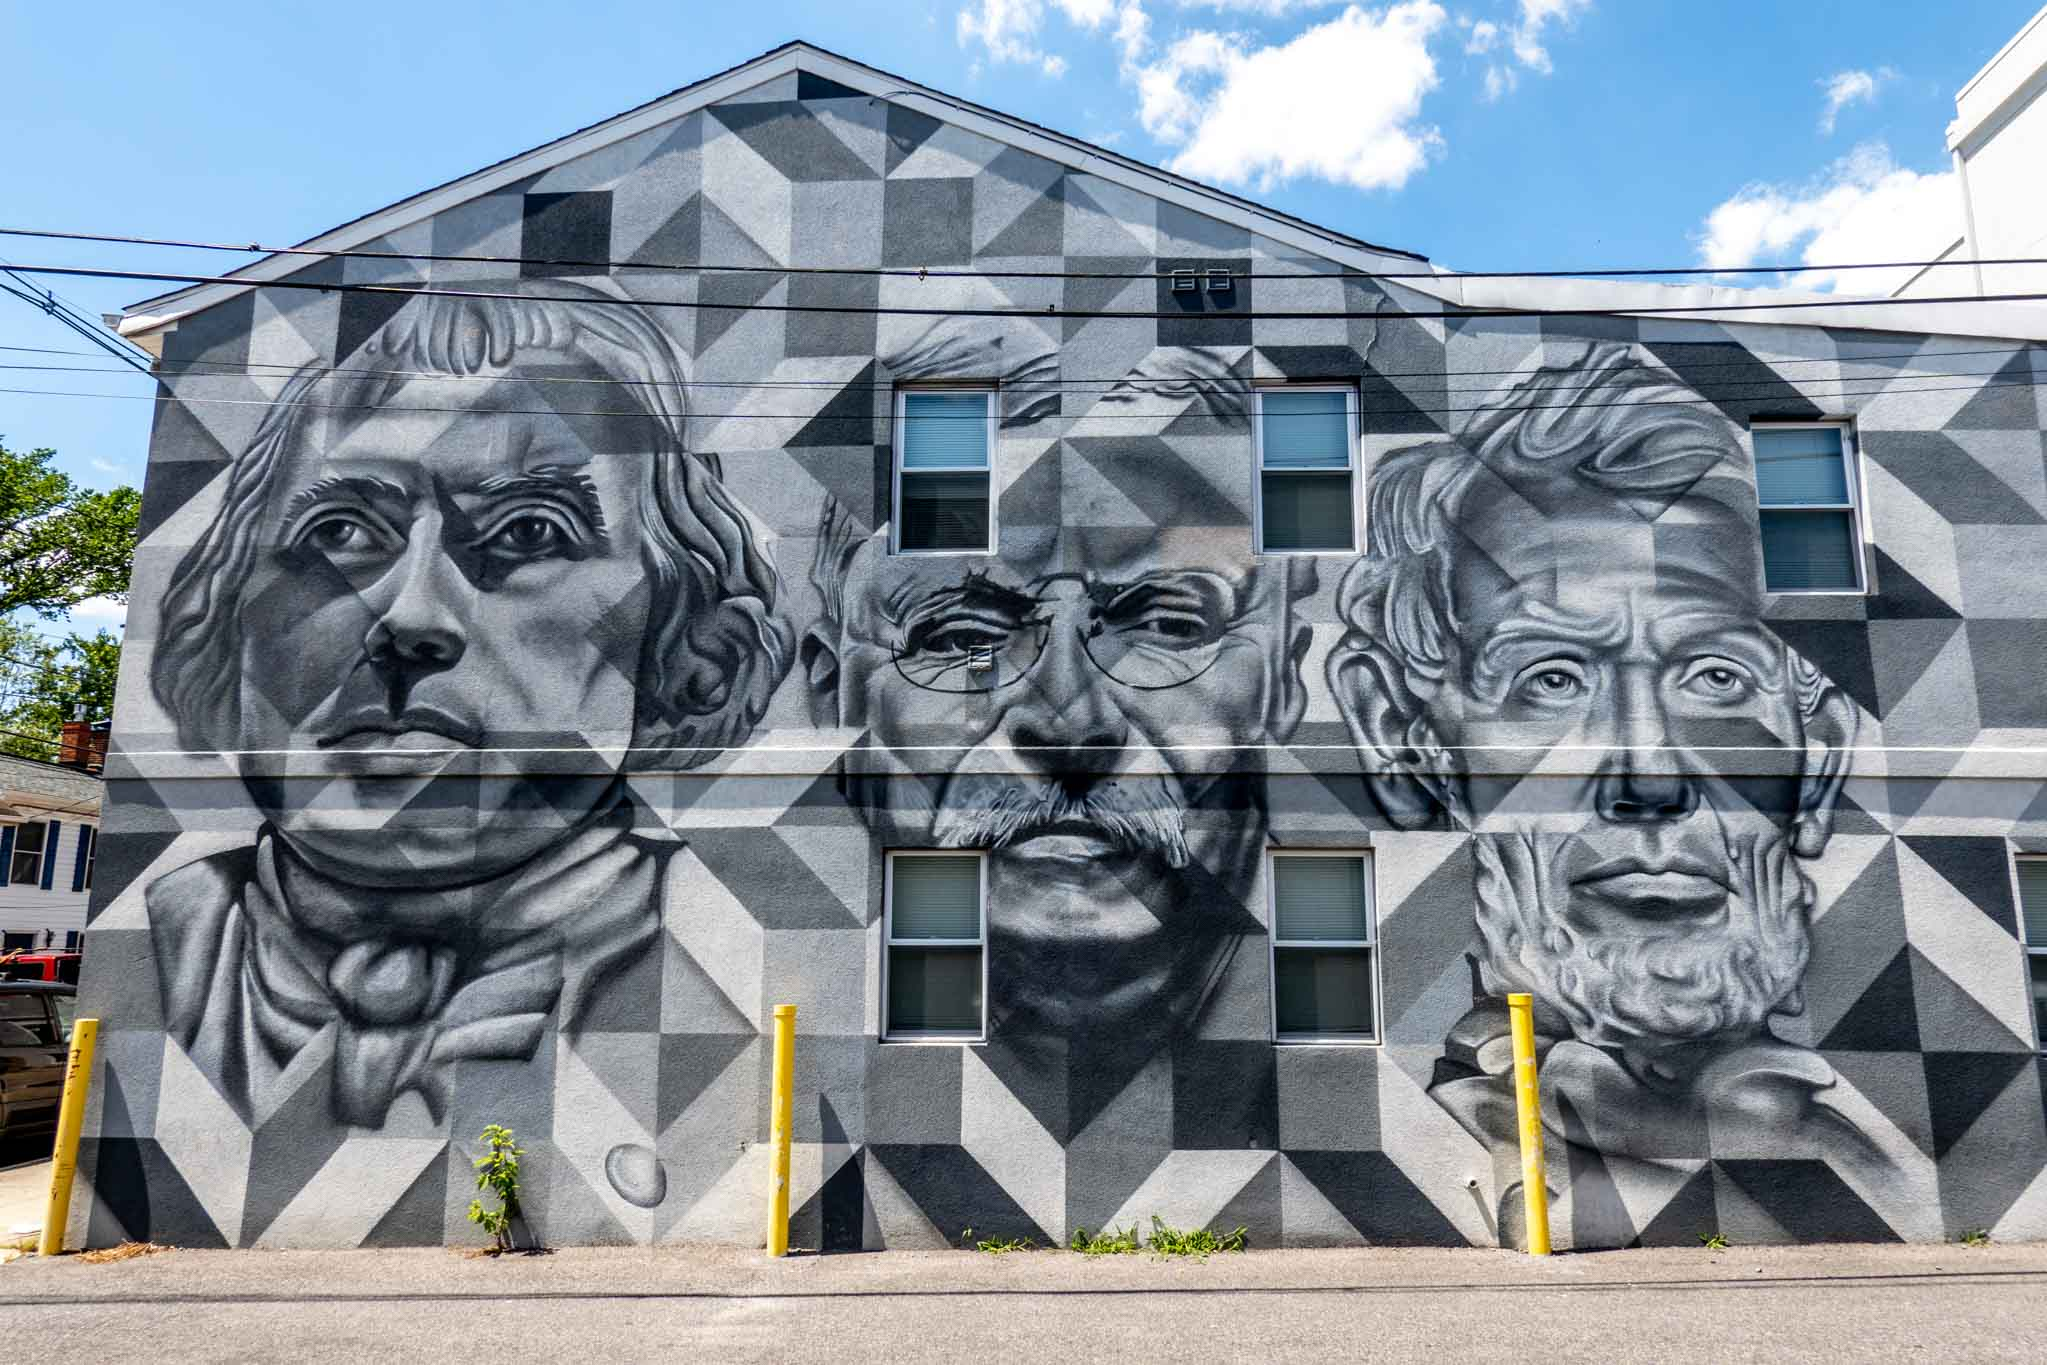 Black, white, and gray street art mural featuring the faces of three men--Abraham Lincoln, Teddy Roosevelt, and James Madison